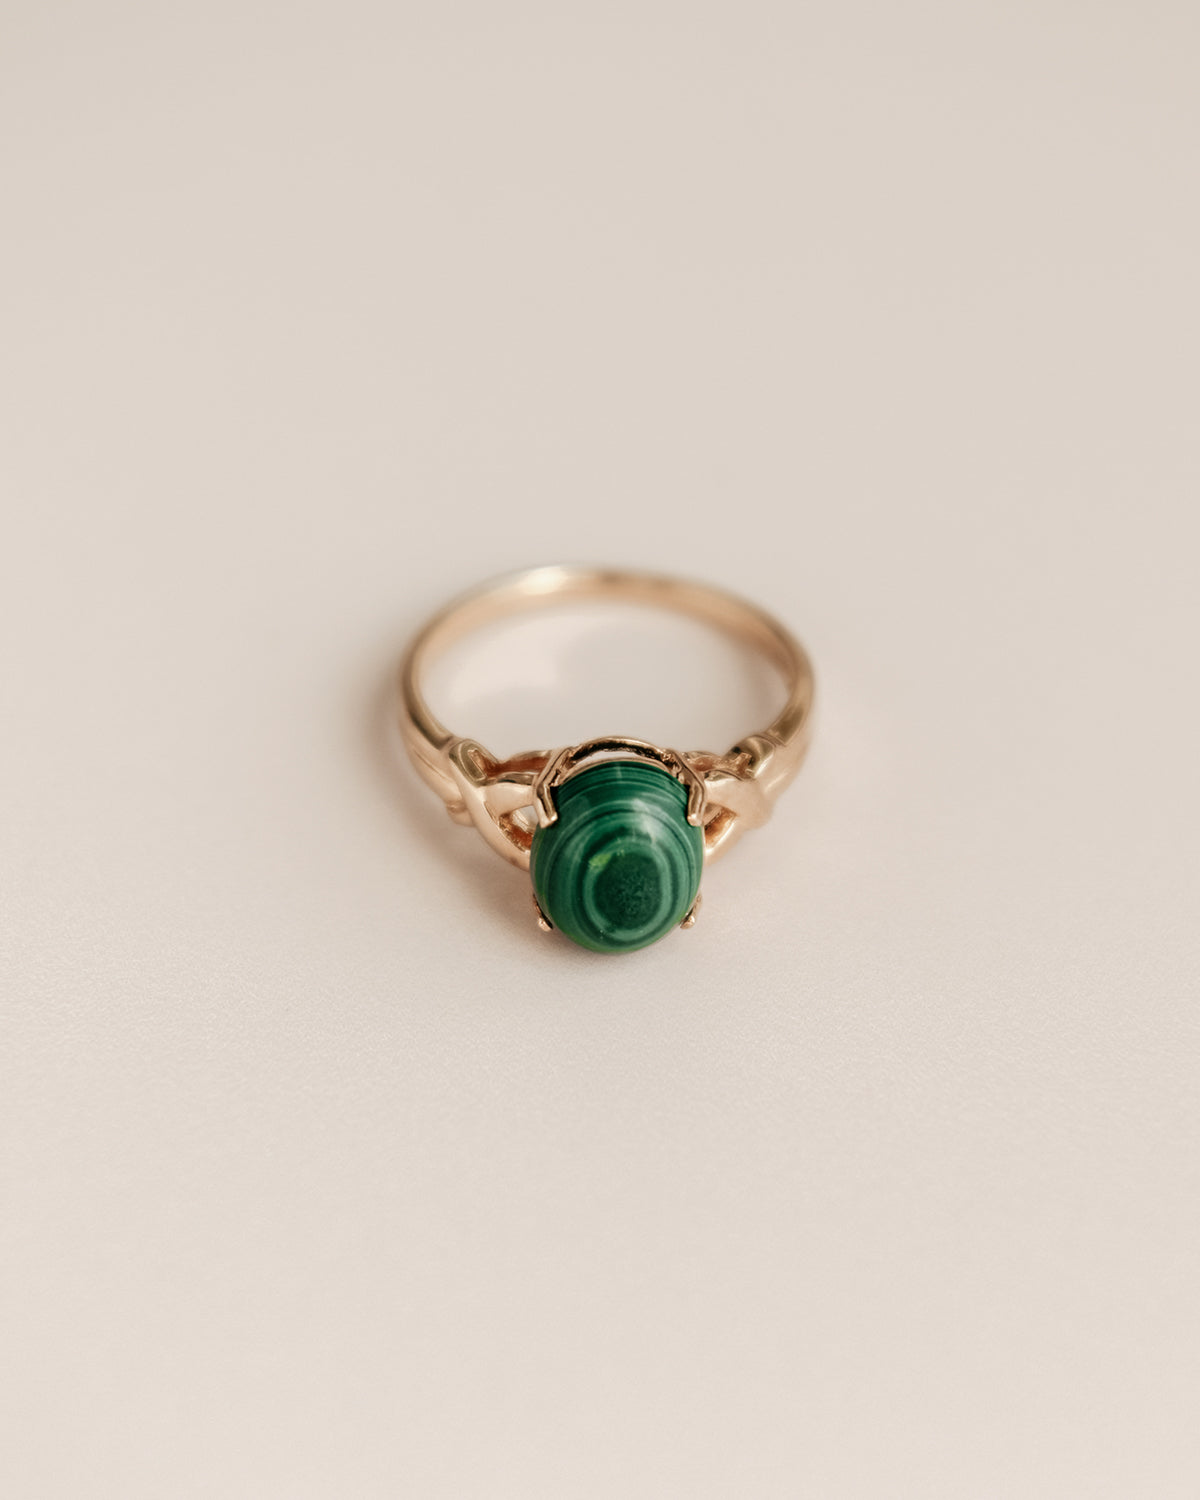 Image of Ramona Exclusive Vintage 9ct Gold Malachite Ring